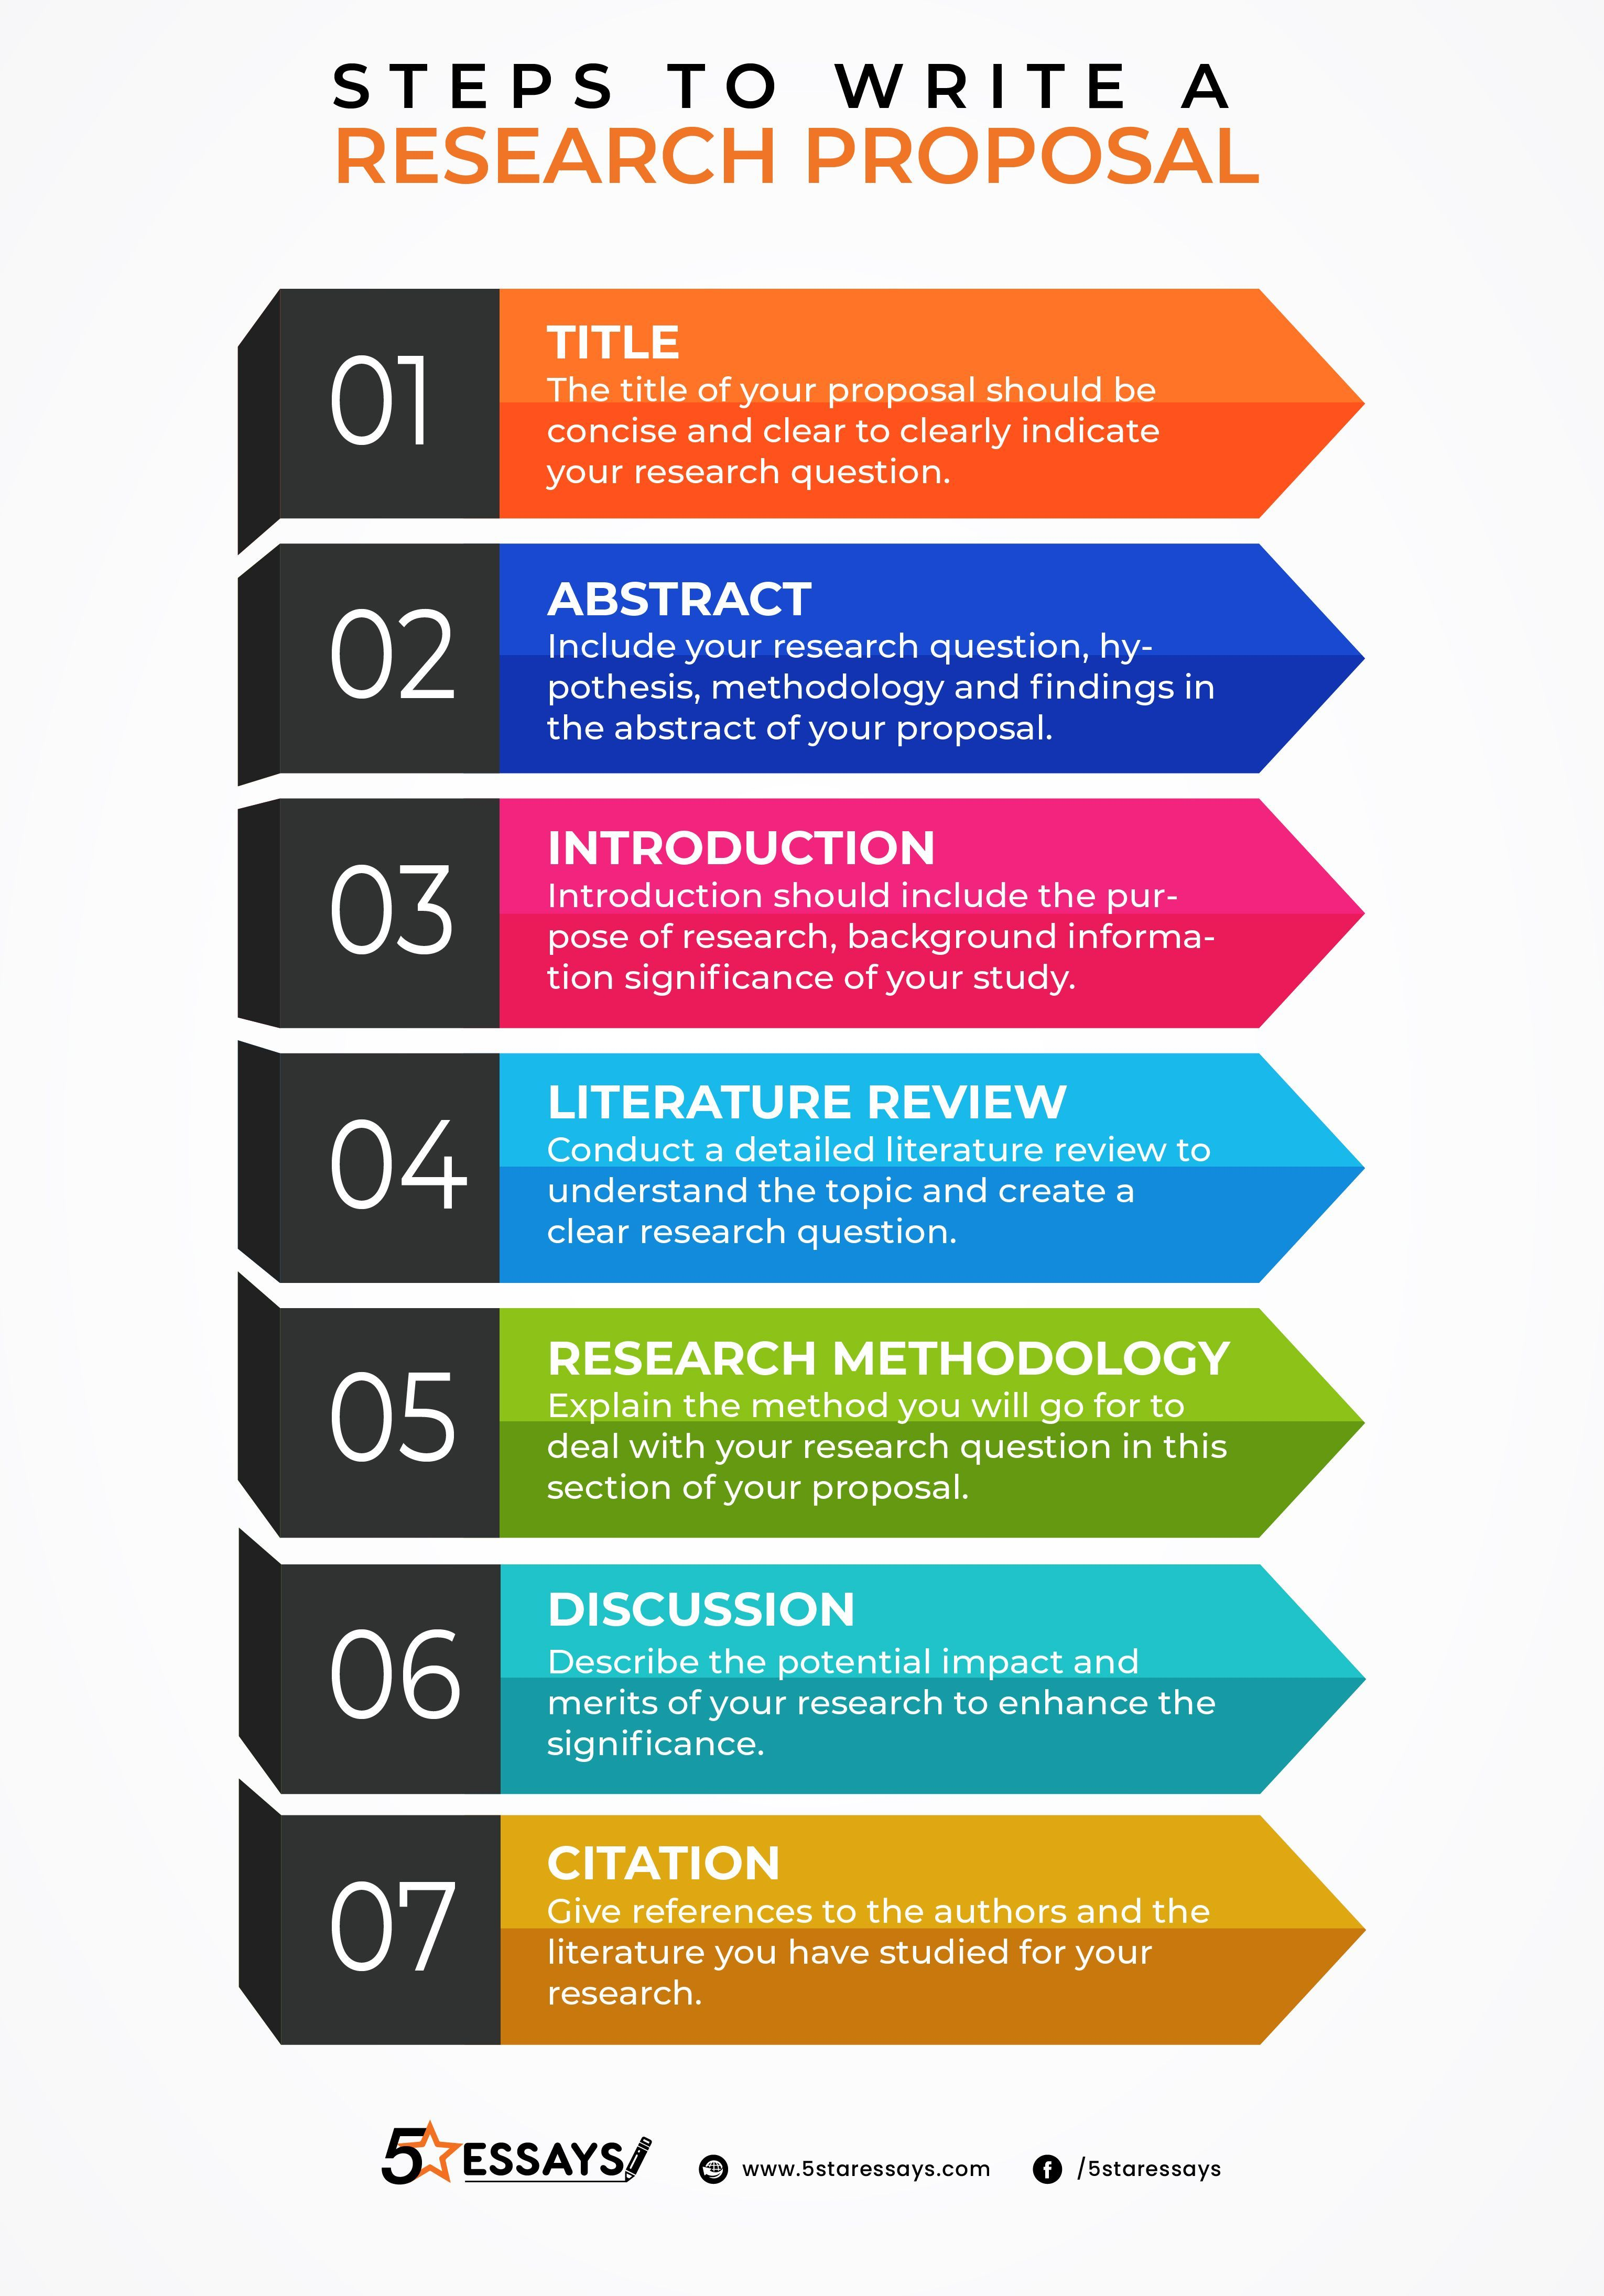 Research Proposal Infographic Writing A Research Proposal Scientific Writing Research Proposal